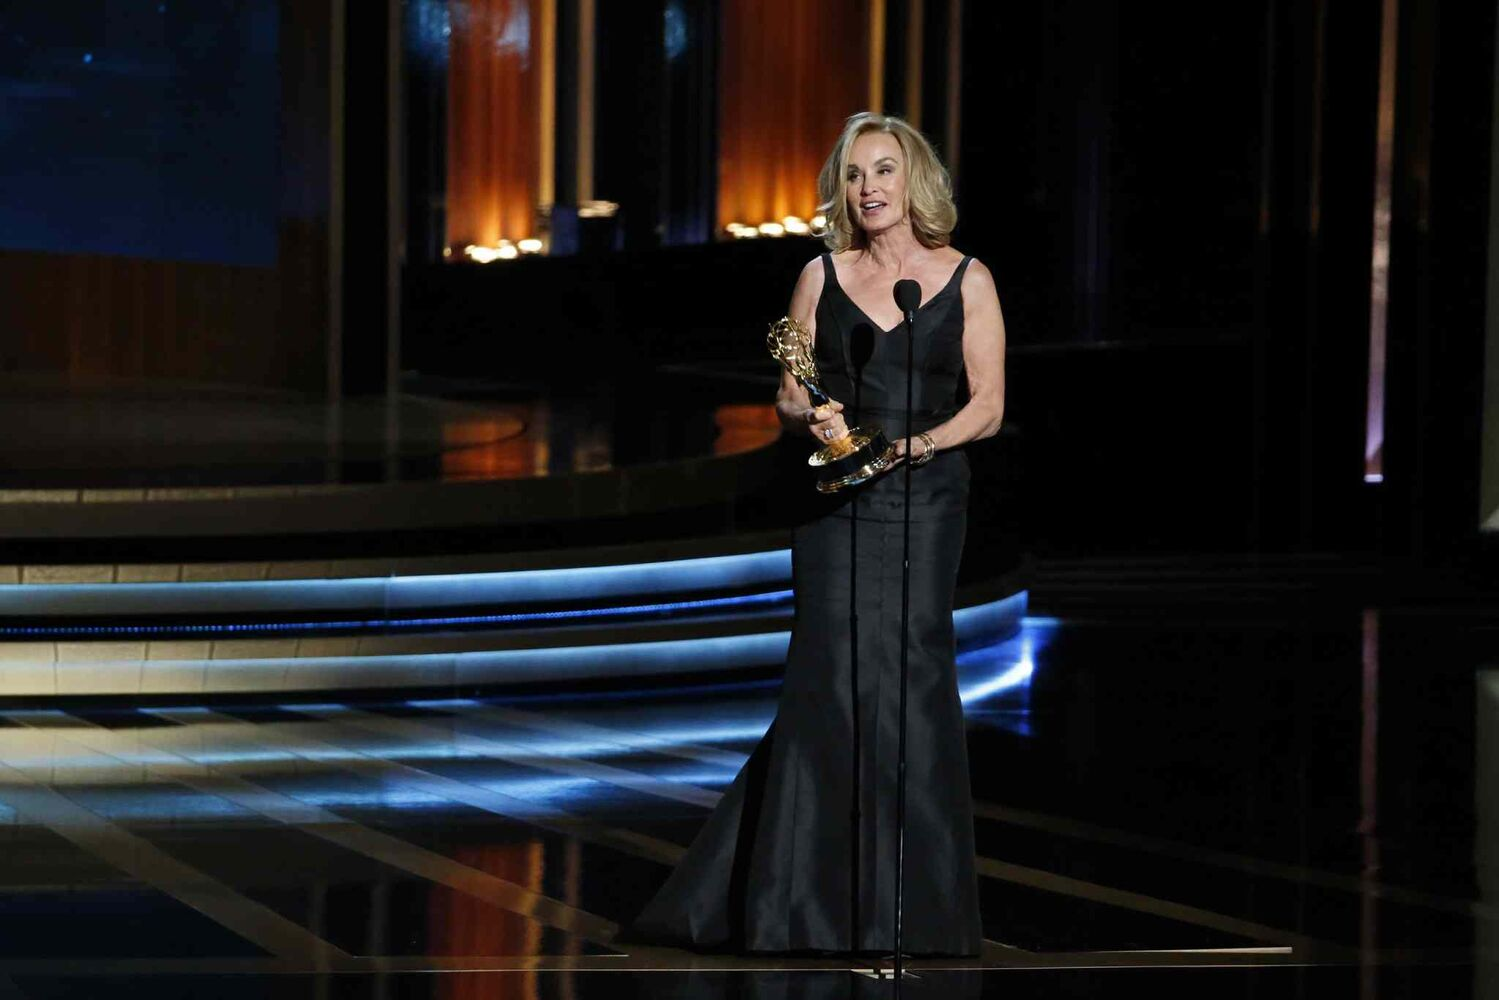 American Horror Story's Jessica Lange accepts her award for Best Actress, Miniseries or Movie during the 66th Annual Primetime Emmy Awards. (Tribune Media MCT)